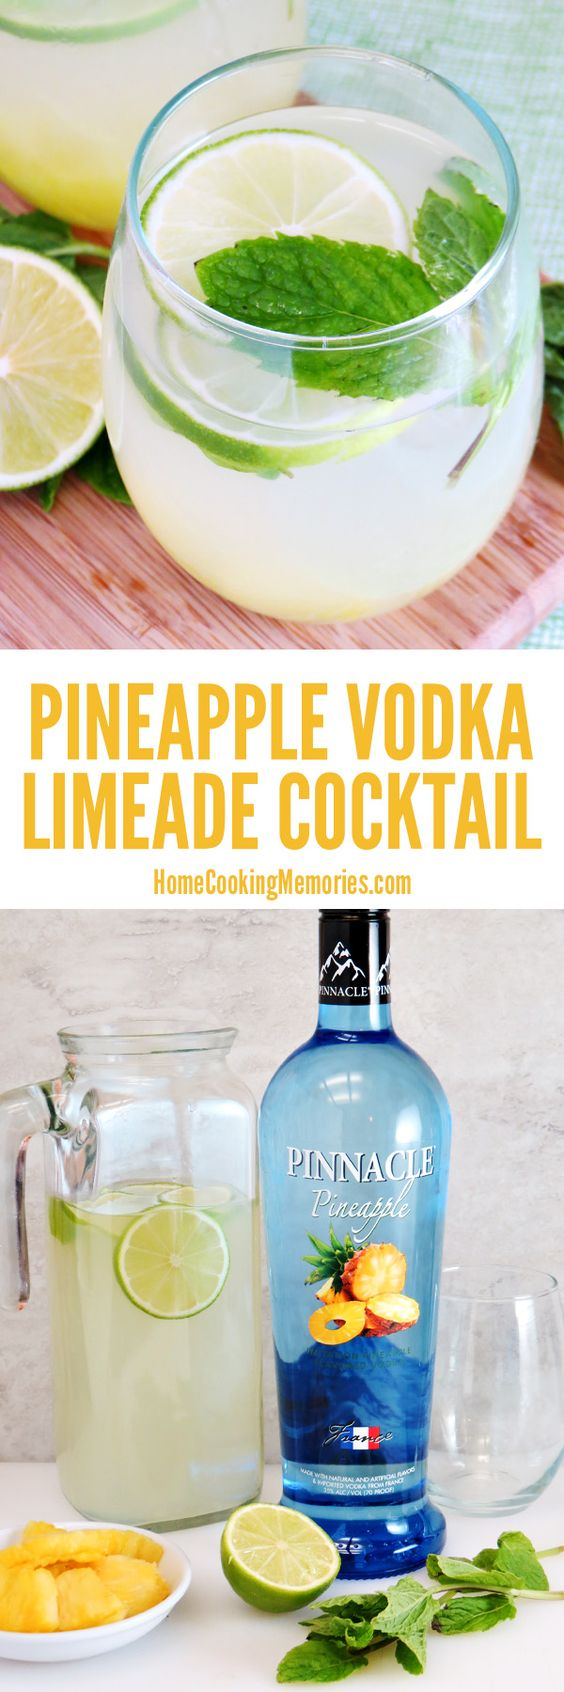 Pineapple vodka easy cocktails and vodka on pinterest for Easy vodka drink recipes